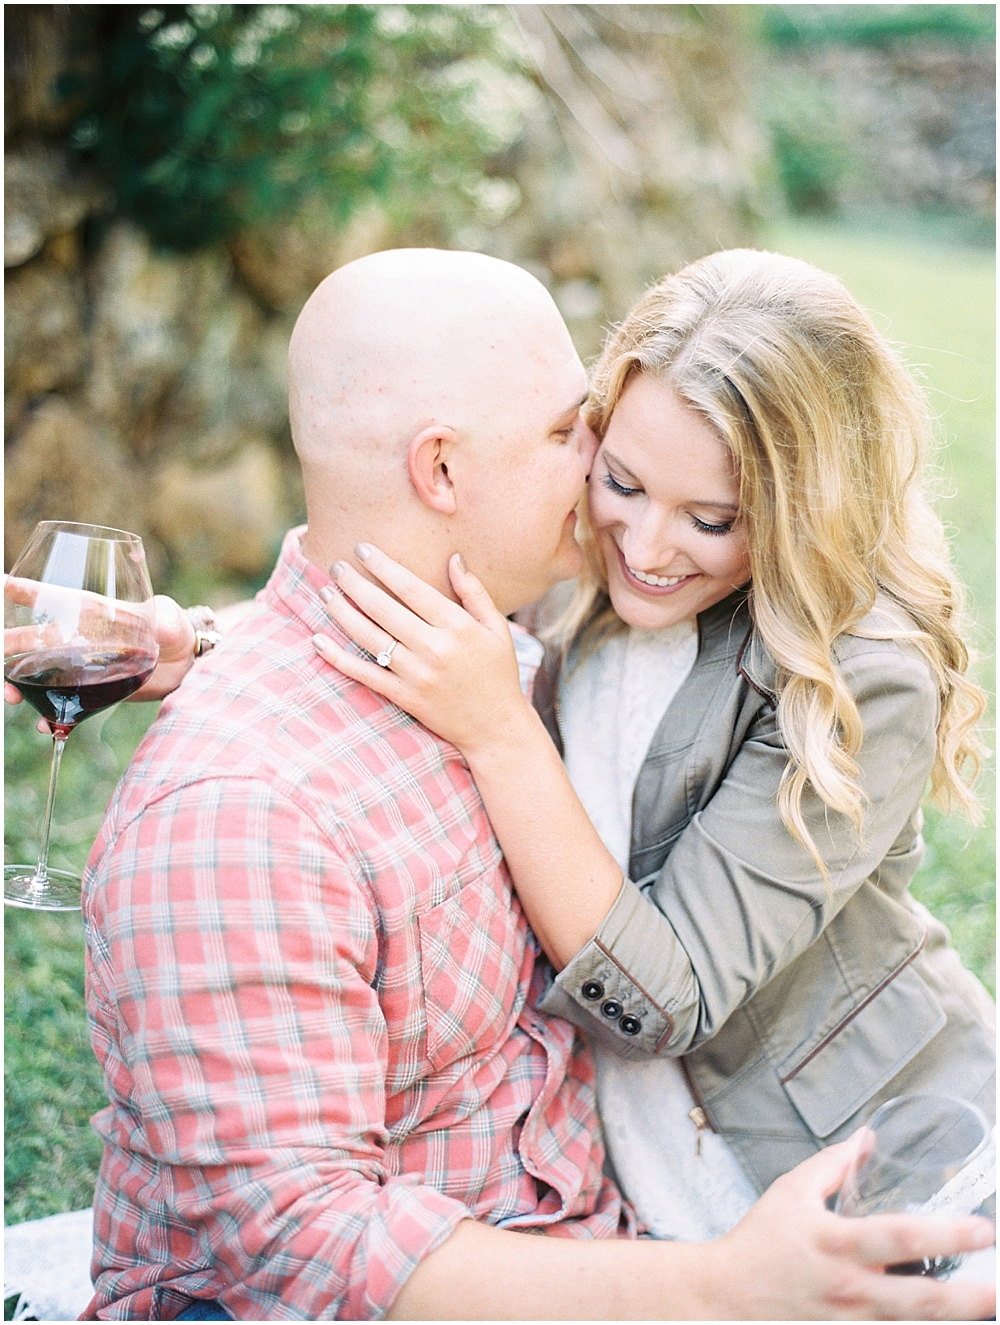 Romantic picnic with wine for an engagement session